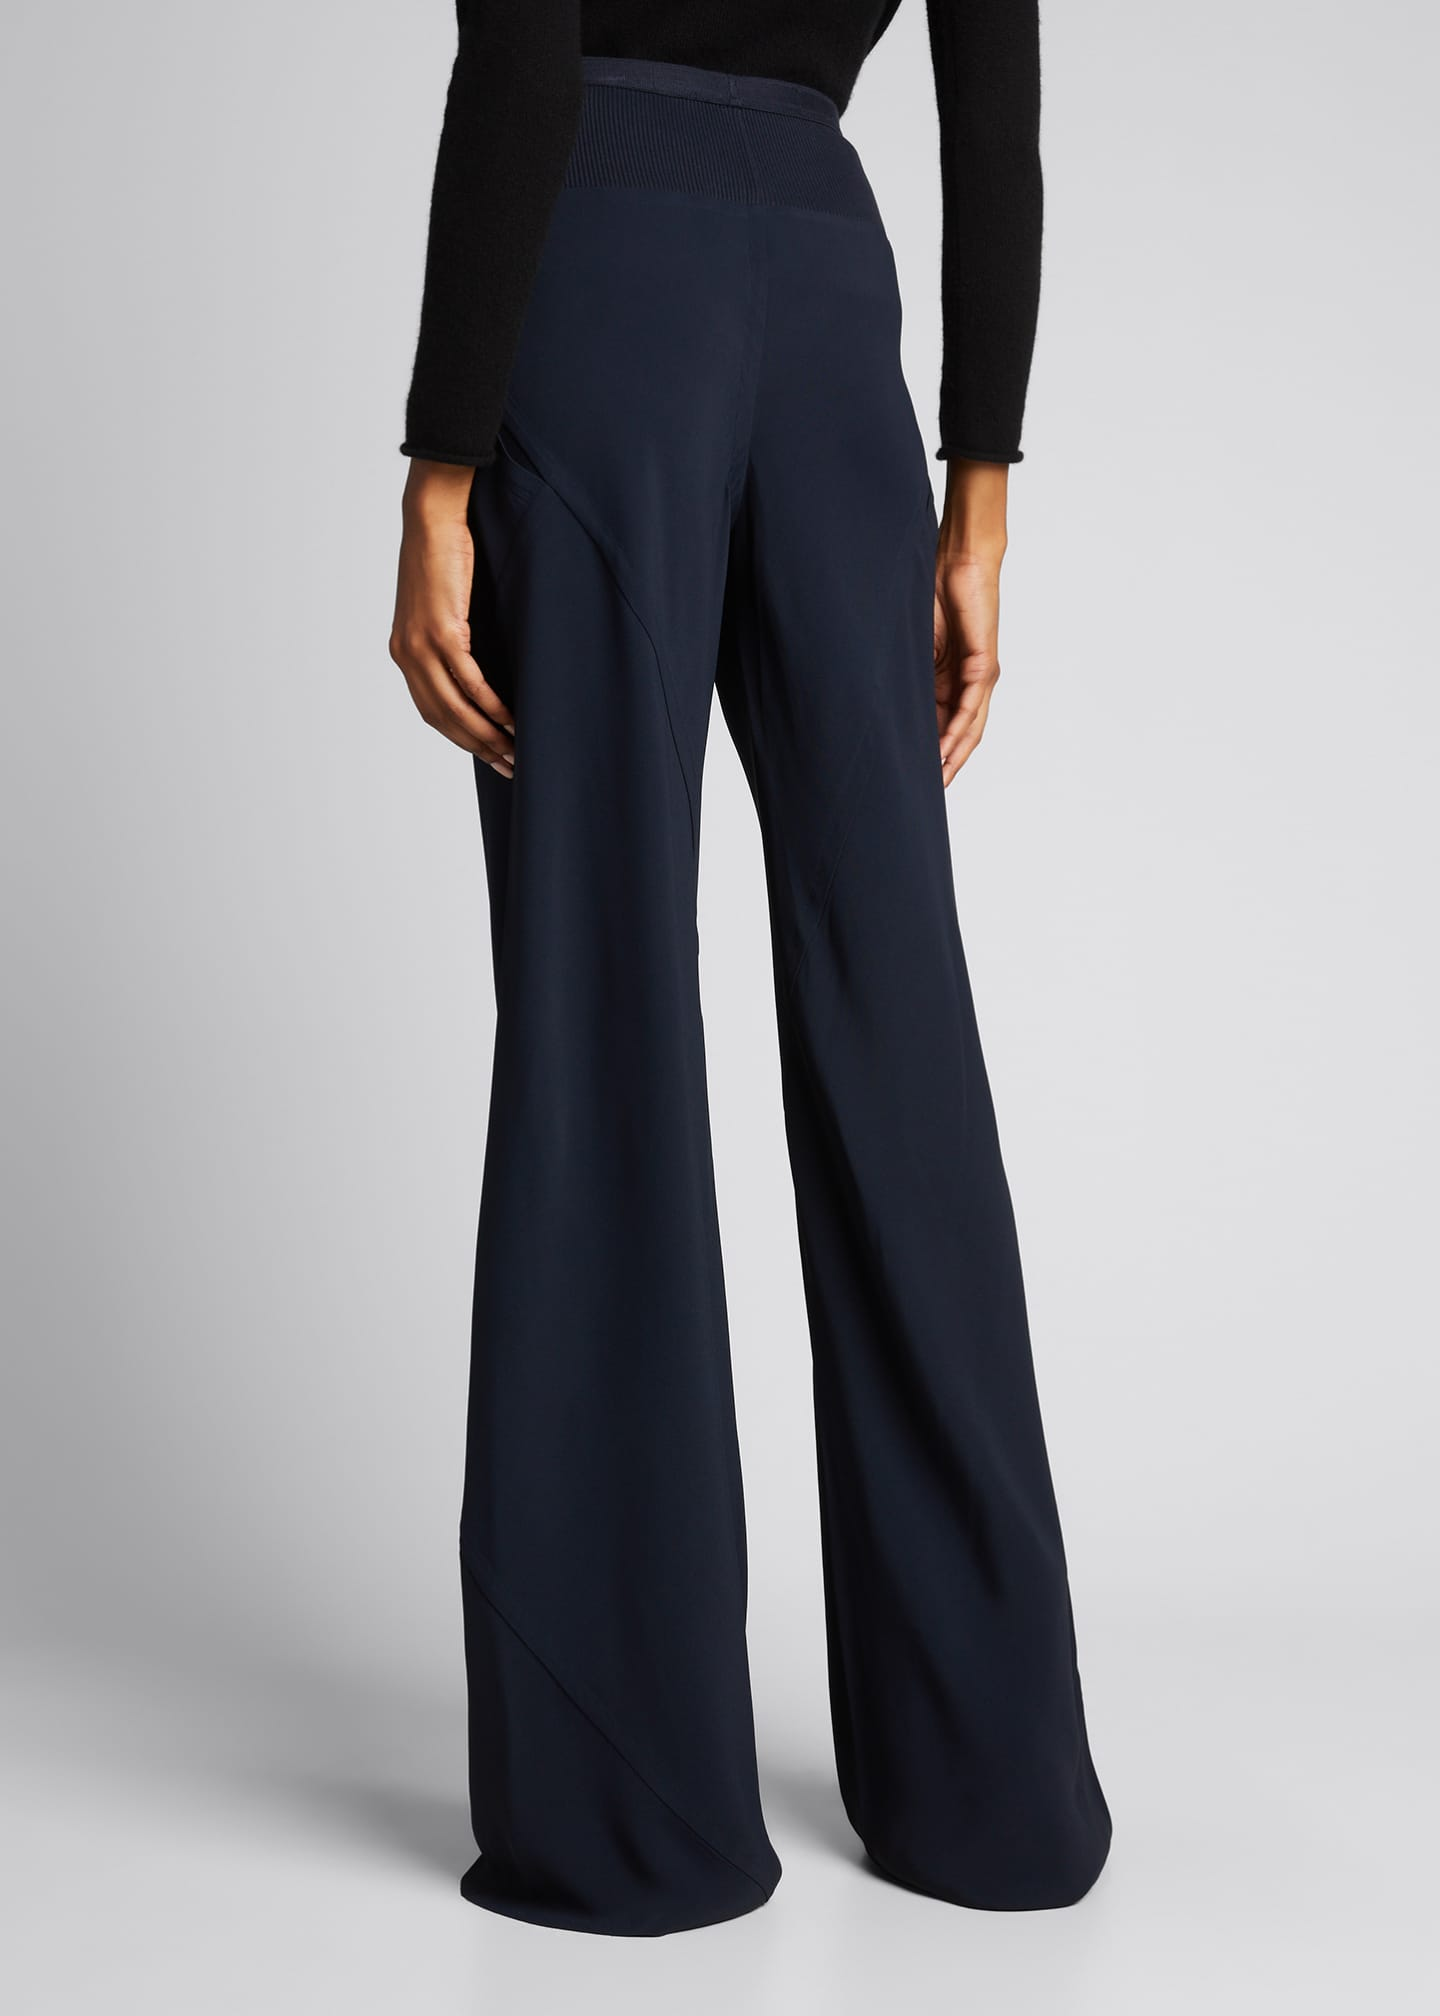 Image 2 of 5: Cady Wide-Leg Bias Pants